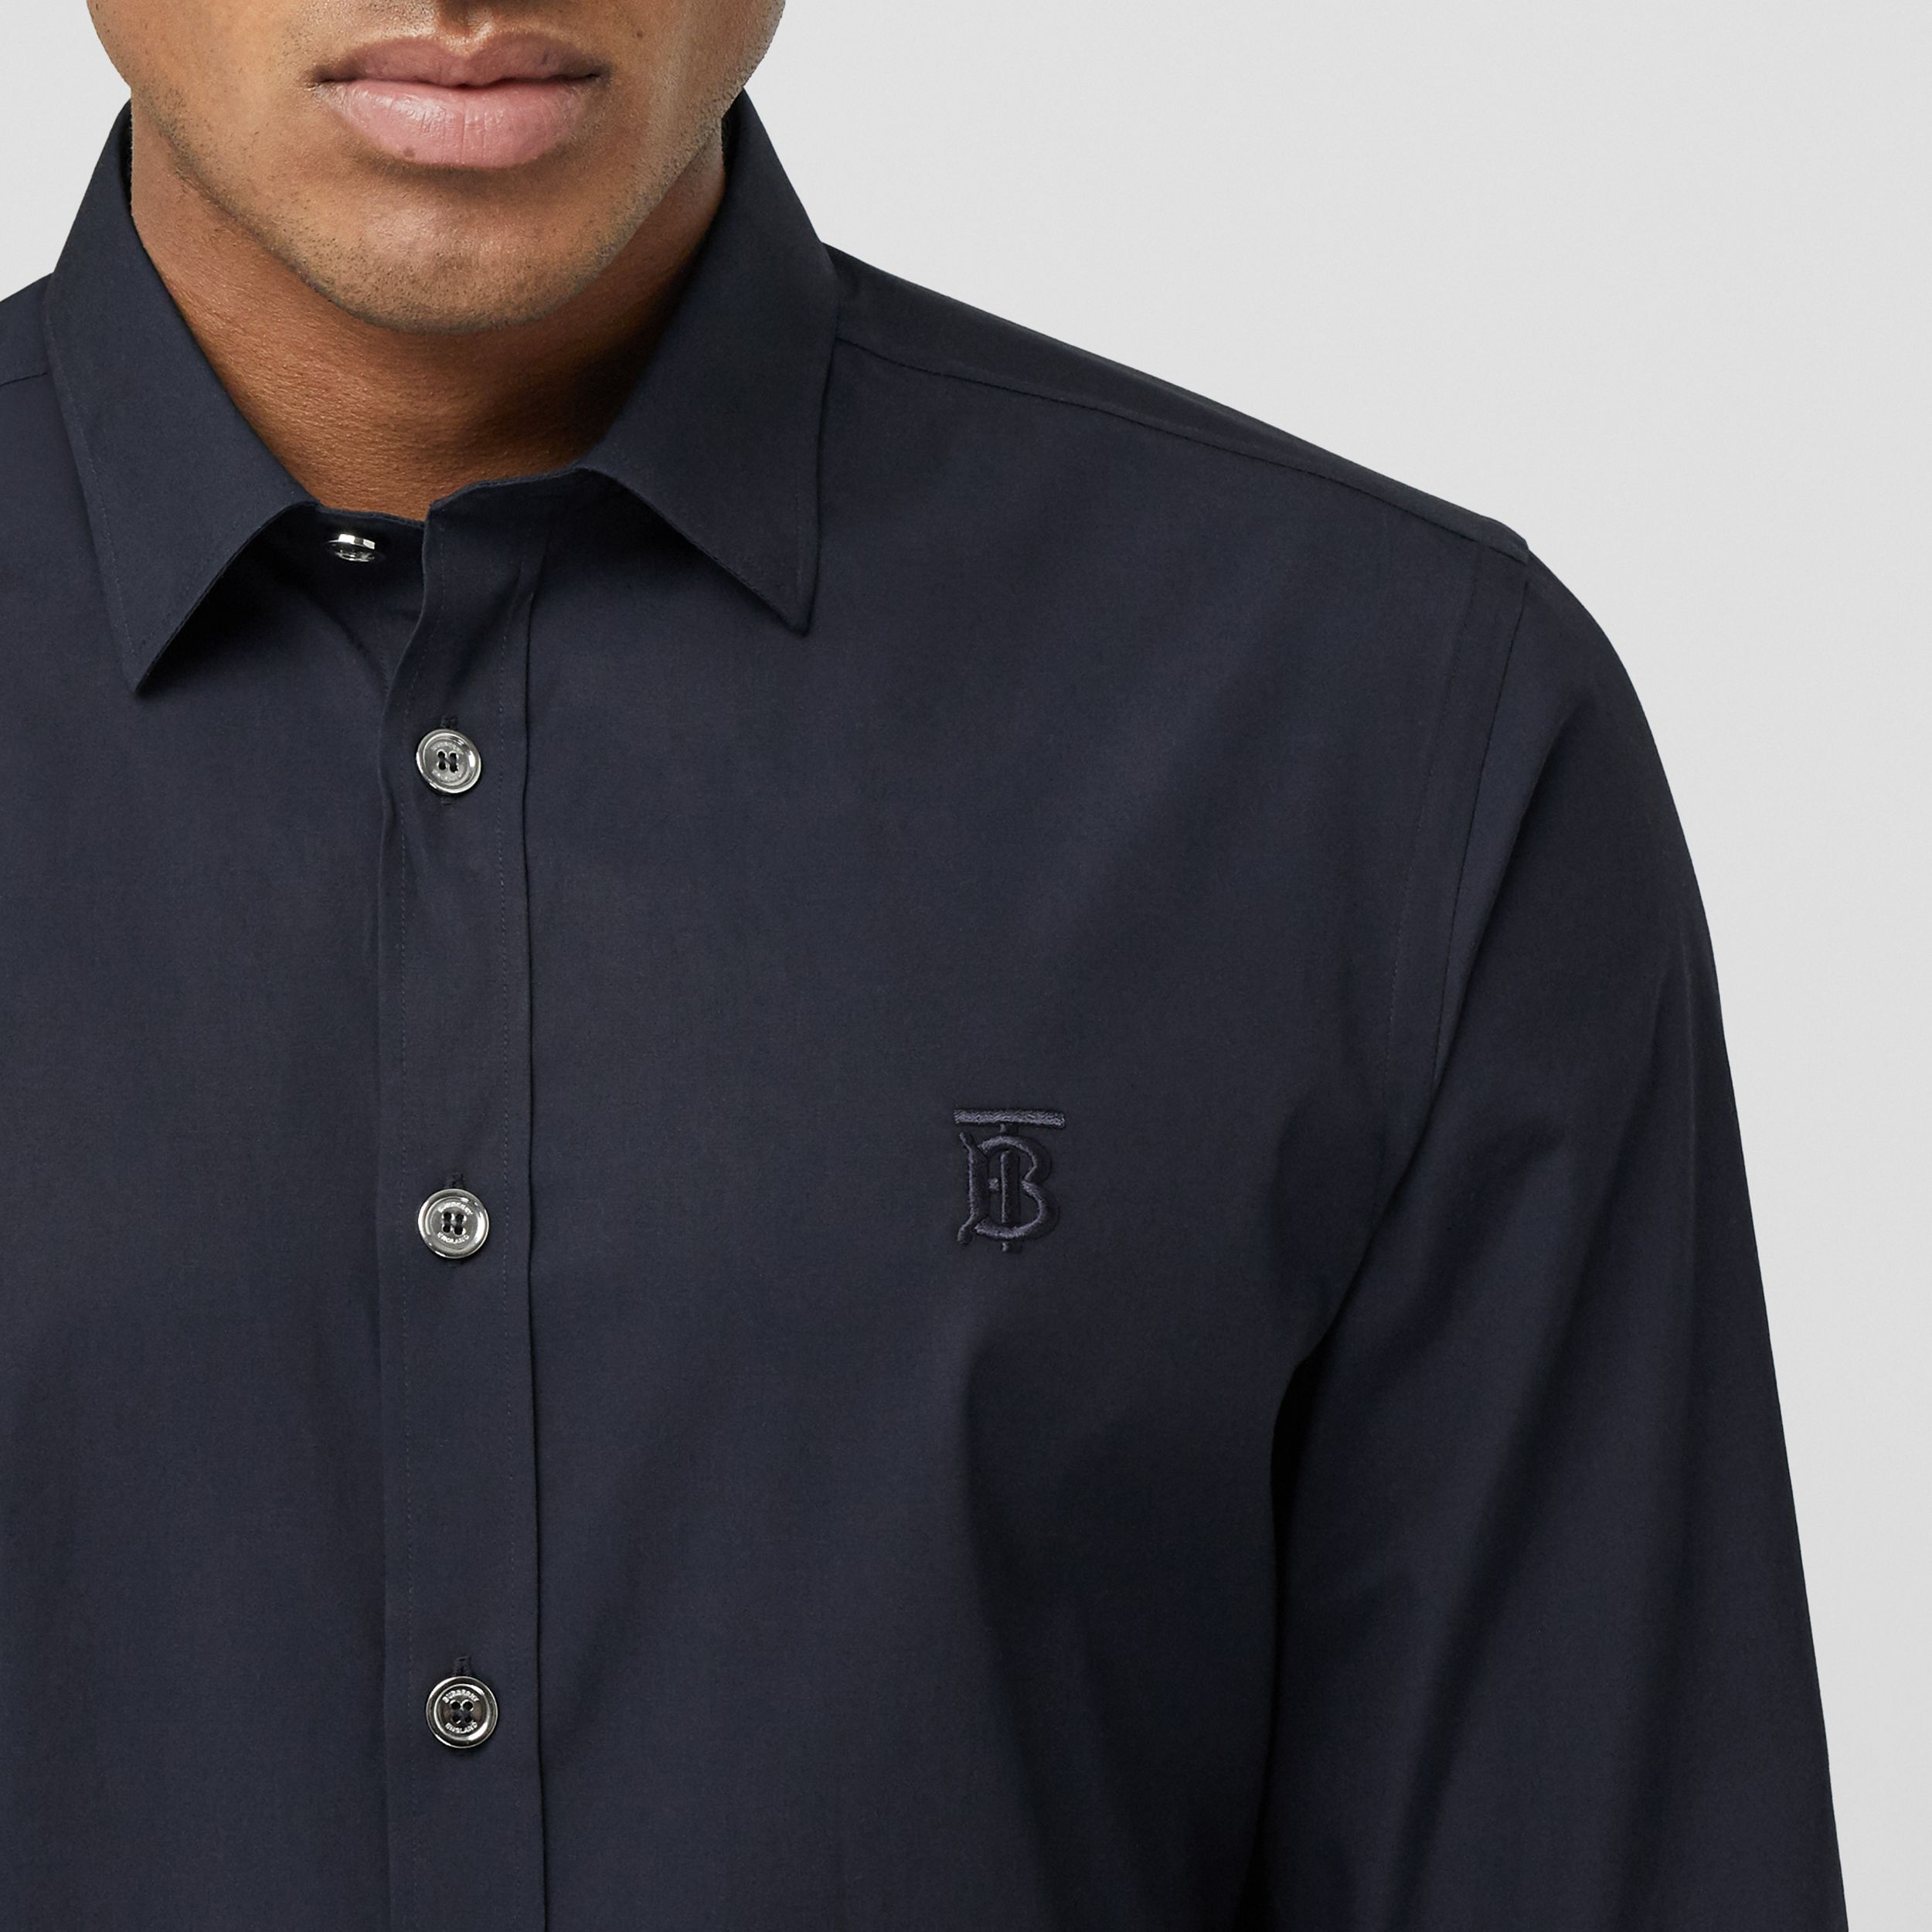 Monogram Motif Stretch Cotton Poplin Shirt in Navy - Men | Burberry Australia - 2